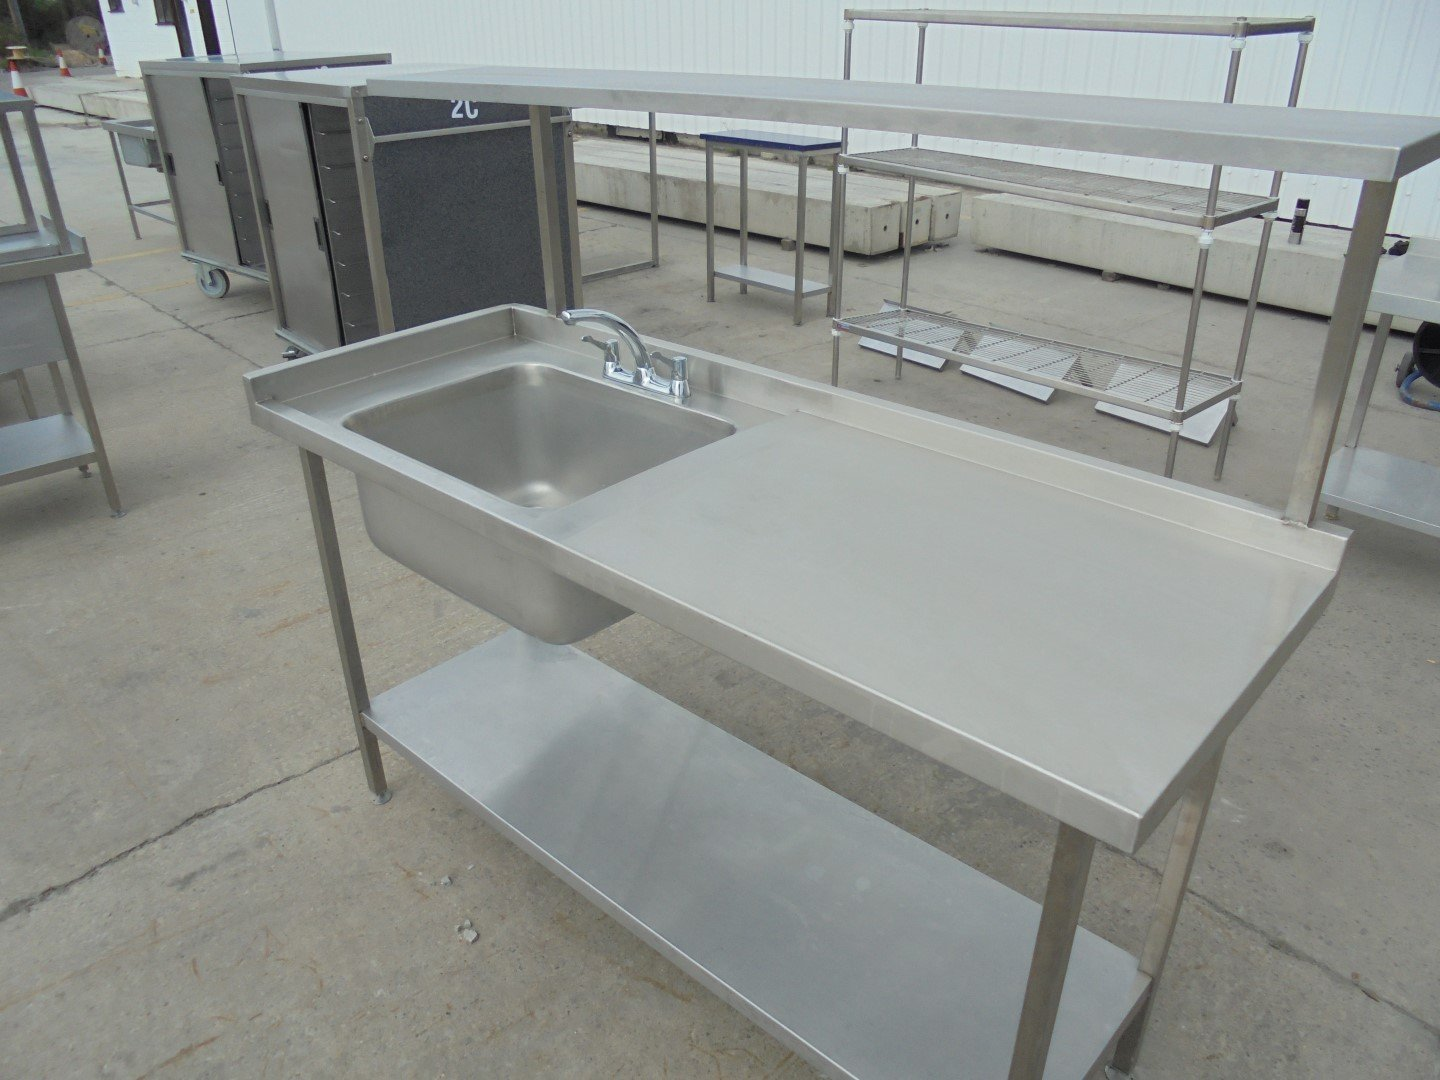 Stainless Steel Single Bowl Sink Table 174cmw X 65cmd X